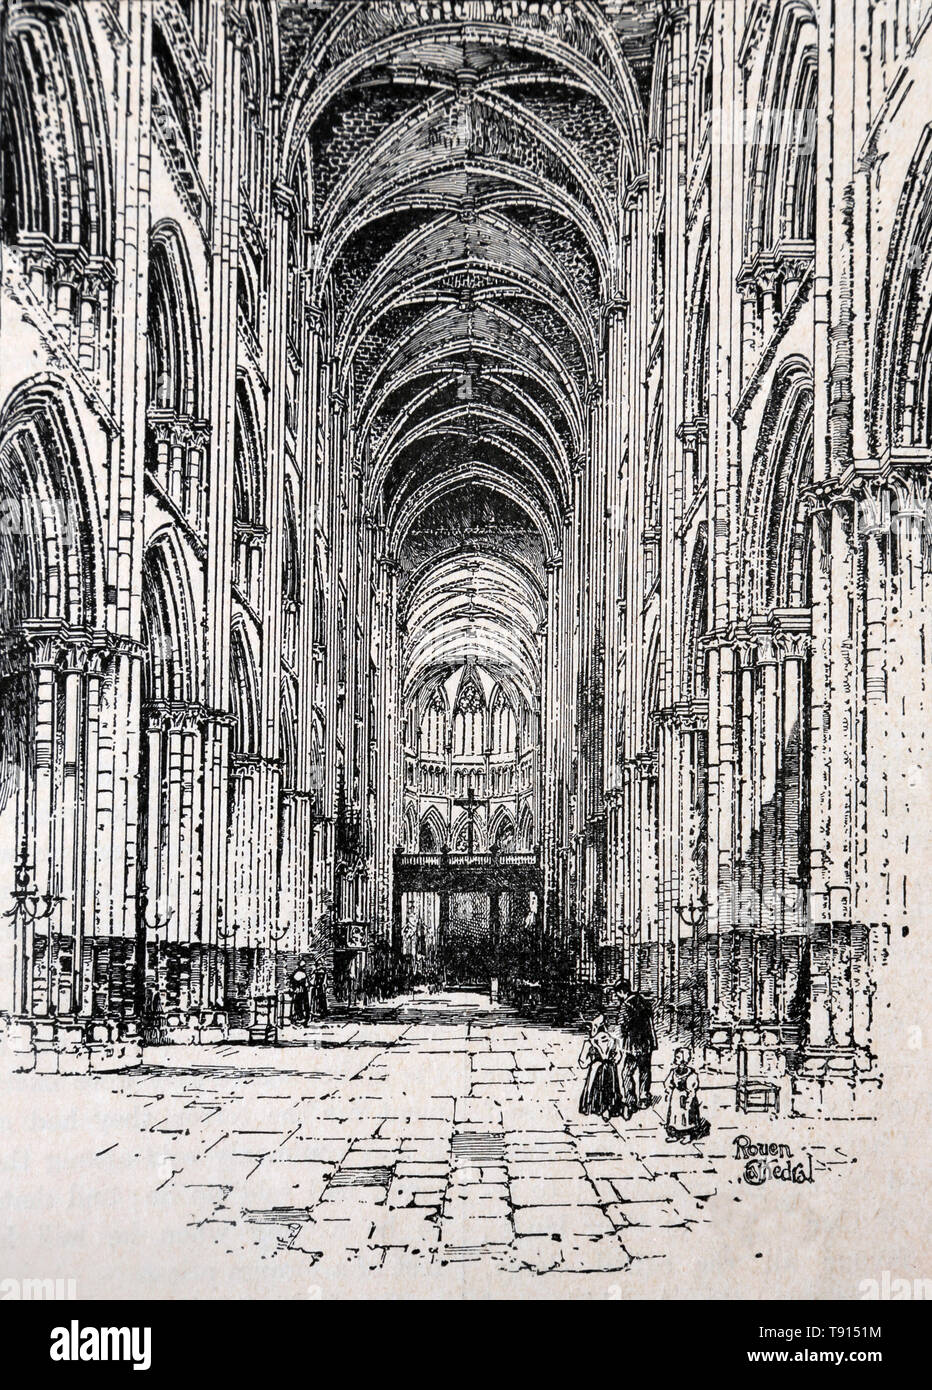 Illustration of Interior of Rouen Cathedral in 1211 A.D from the Book Cassell's History of England - Stock Image